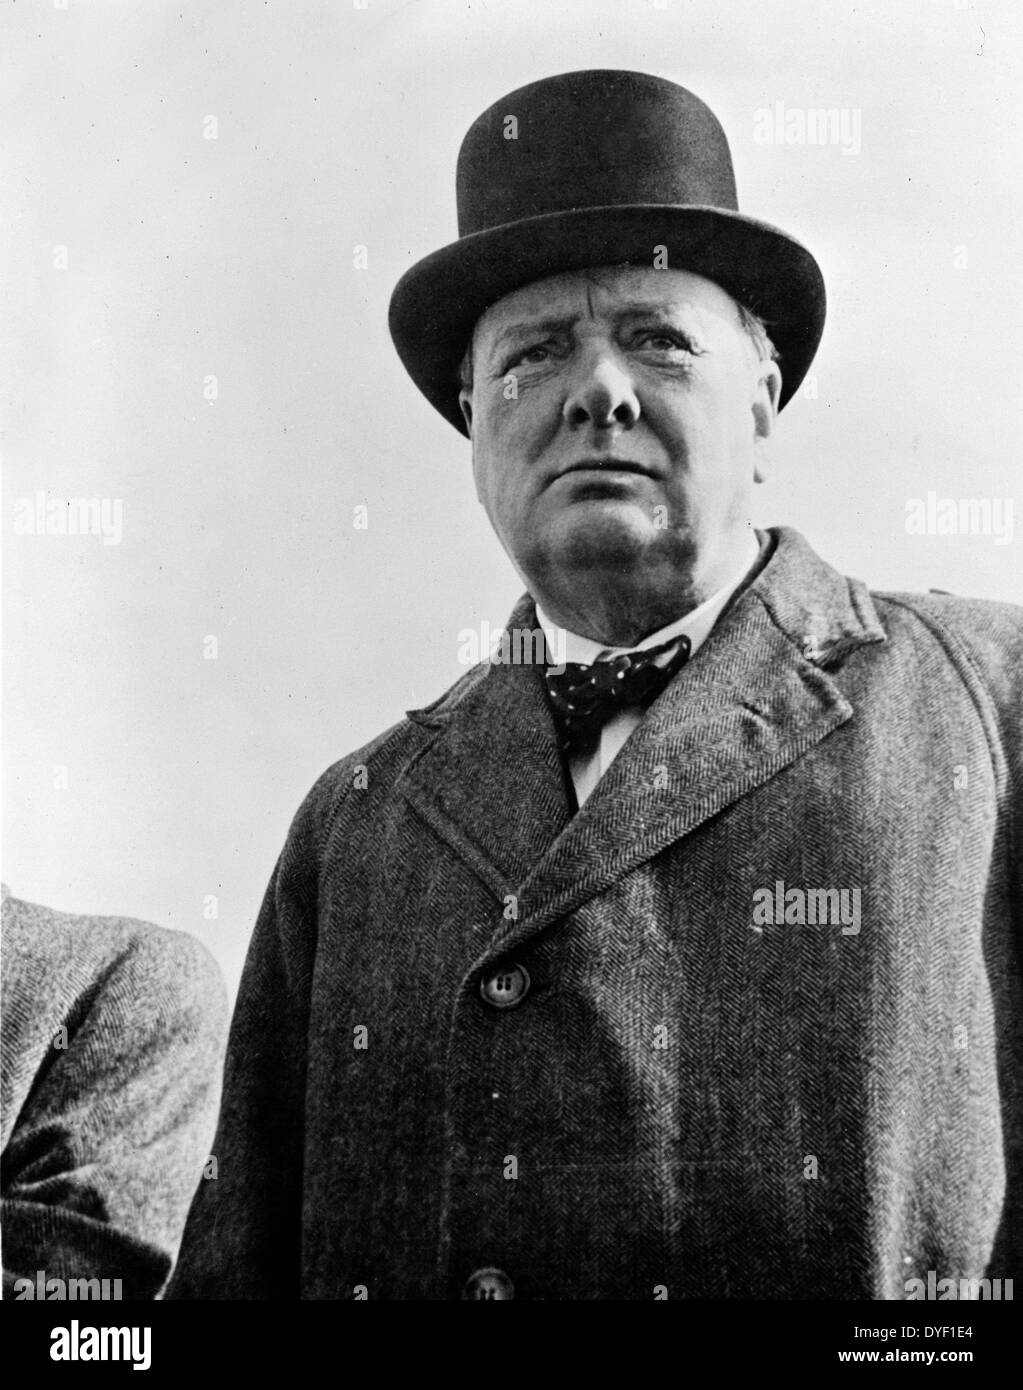 Prime Minister Winston Churchill of Great Britain 1942. - Stock Image